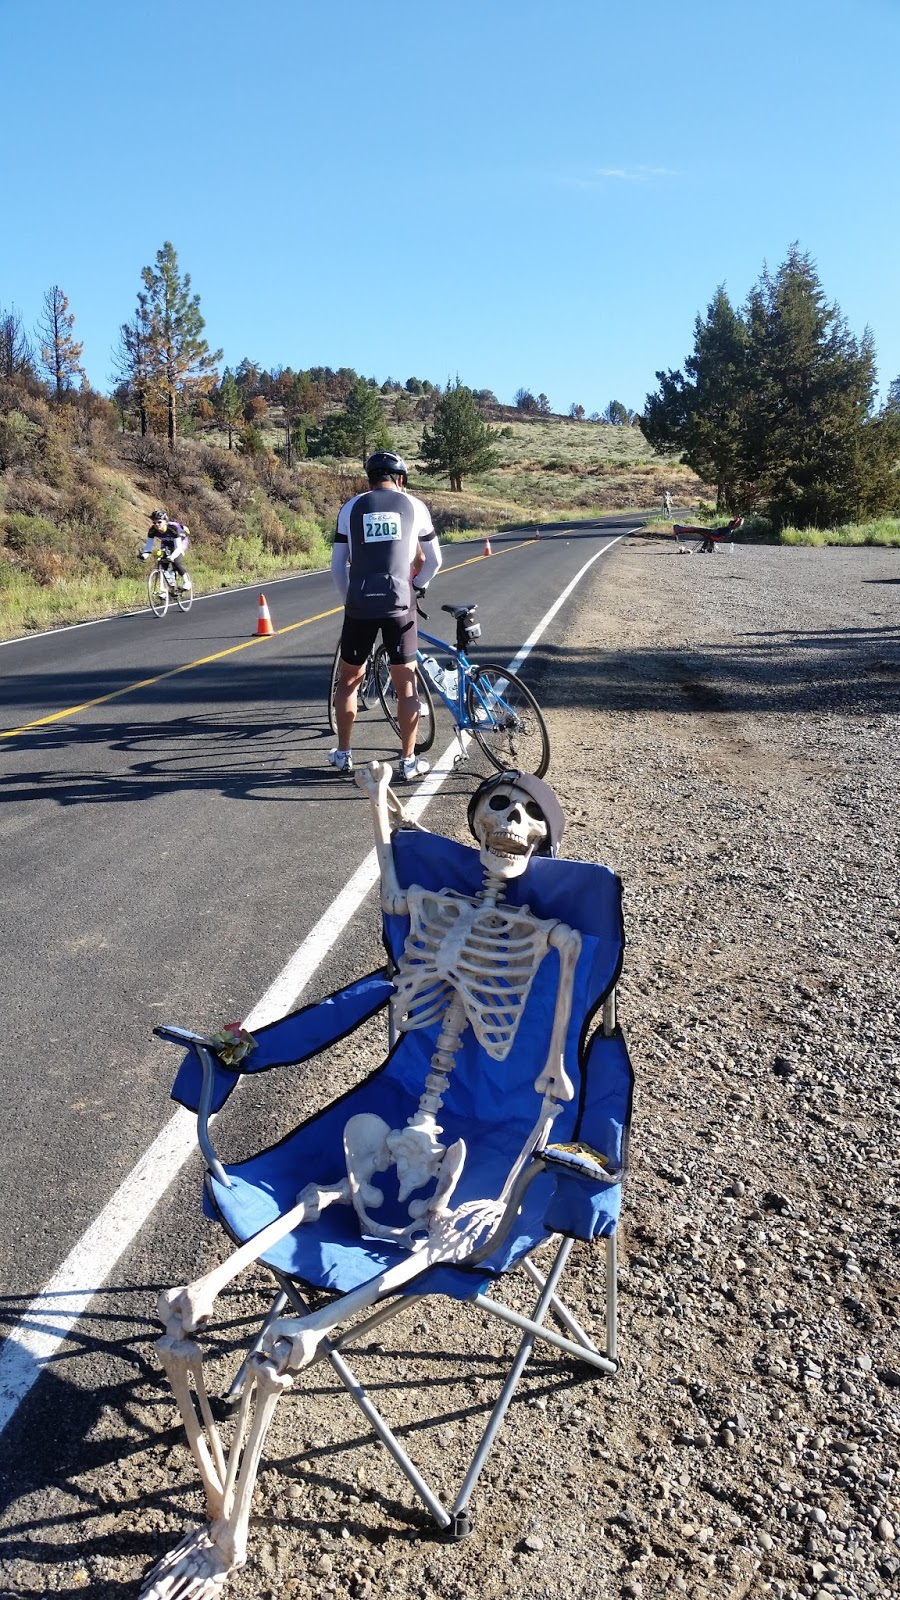 Cranky Fitness 23andme Genetic Testing What S The Deal: Cranky Fitness: Death Ride 2015